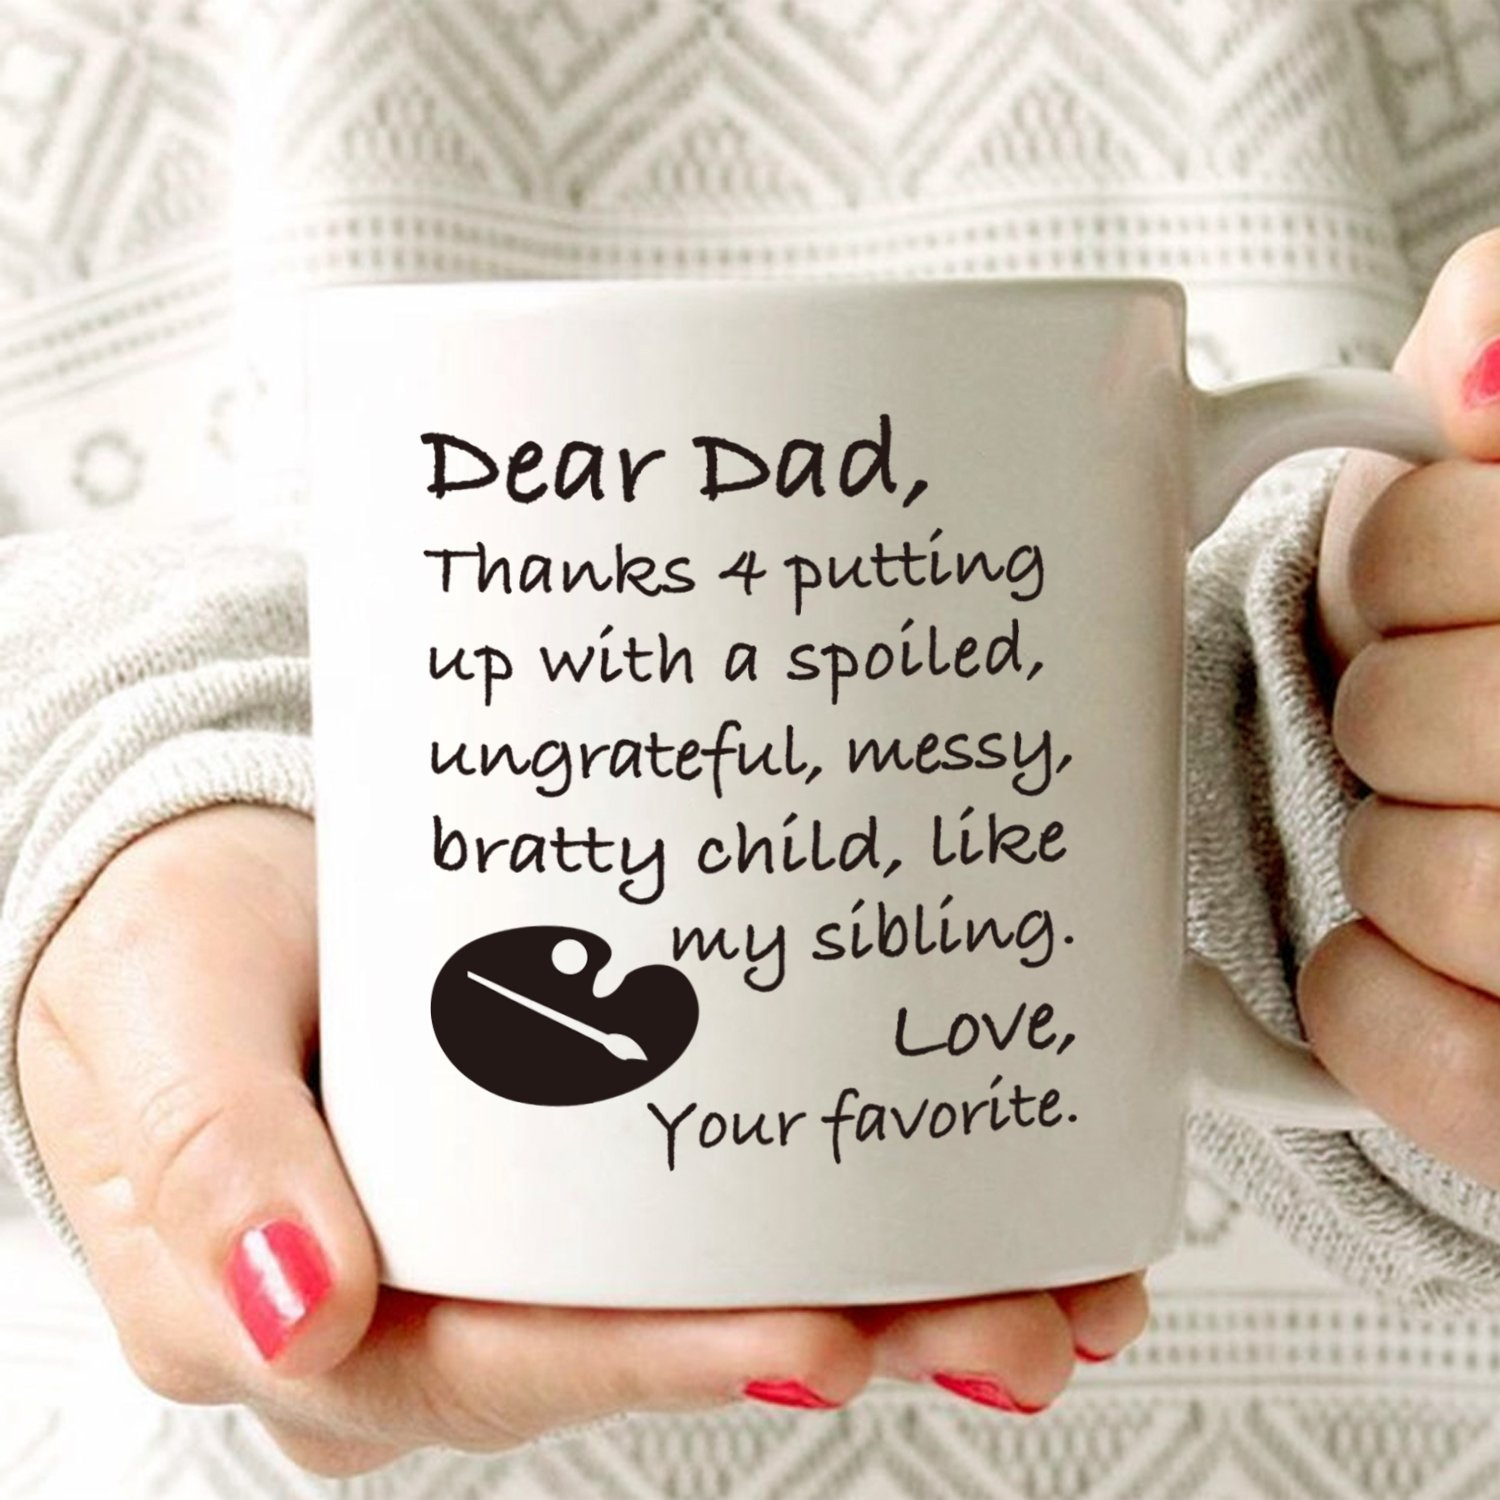 Love Best for Dad Father Porcelain Cup Thanks 4 putting up with a spoiled Your Favorite White This Might be Wine Funny Dad Coffee Mug Dear Dad